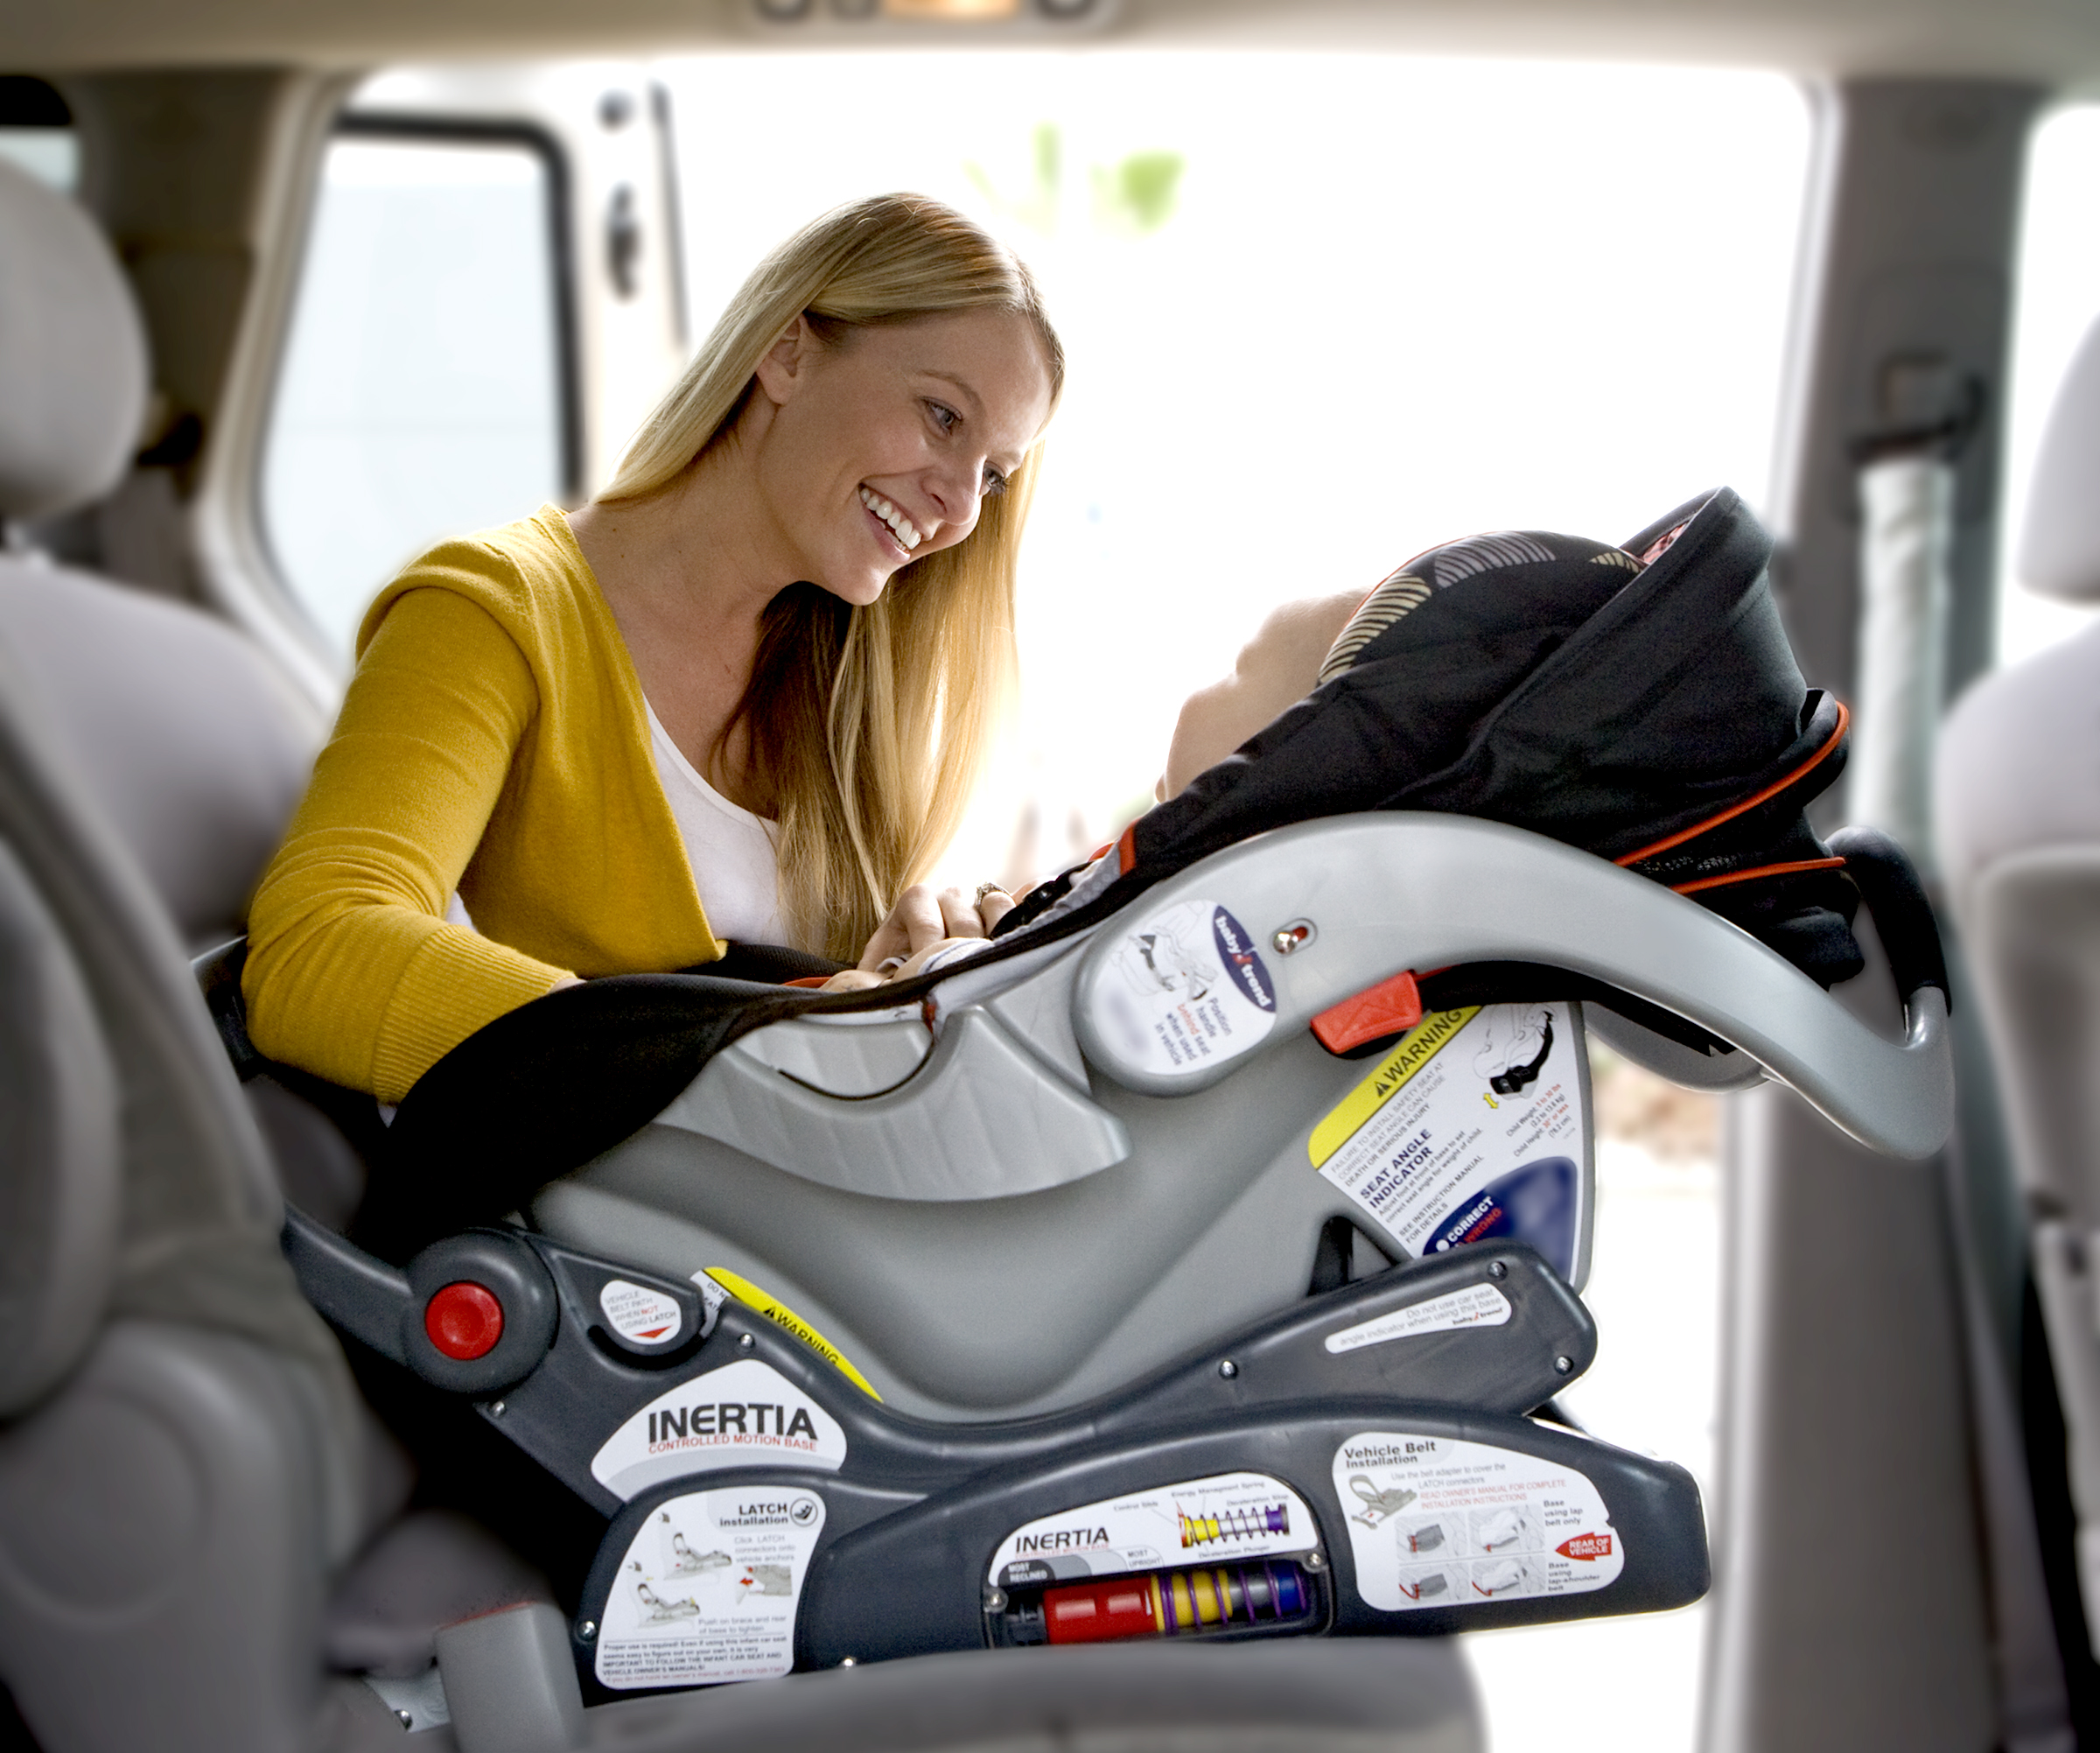 babies r us, toys r us, inertia, car seat, baby trend, infant car seat, best car seat, safe, newborn